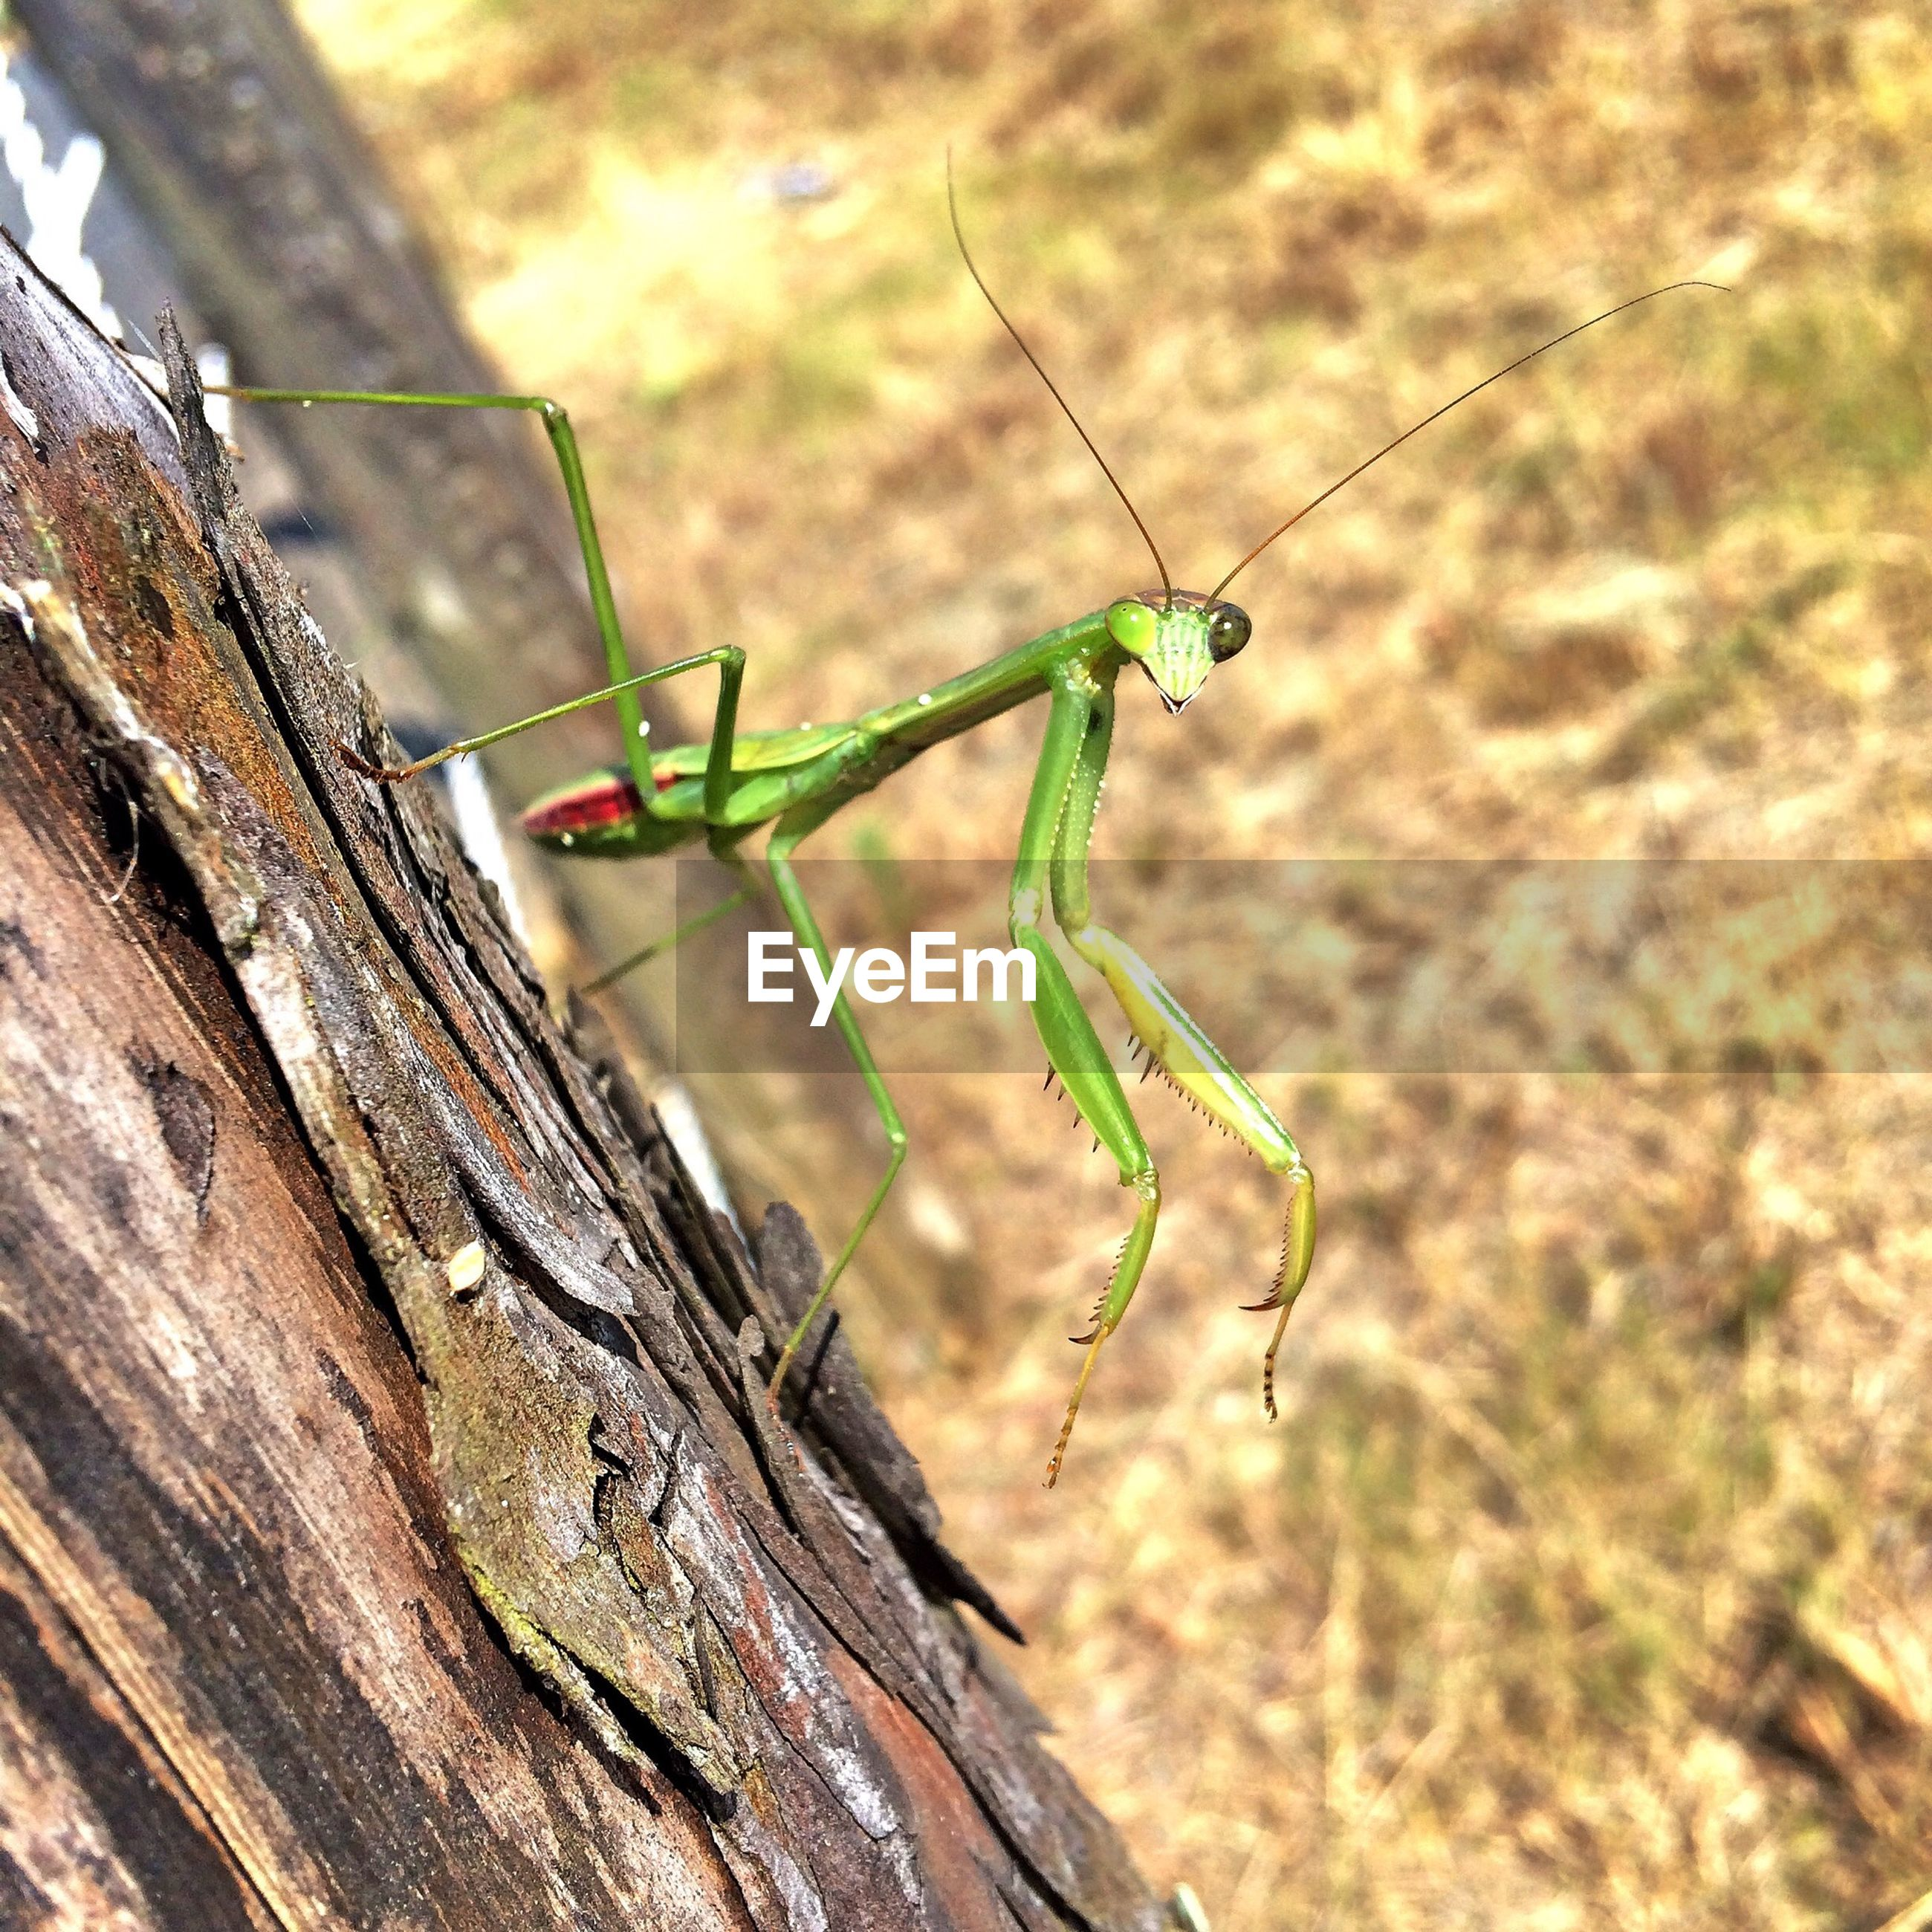 focus on foreground, close-up, wood - material, nature, selective focus, day, textured, insect, outdoors, tree trunk, plant, growth, twig, animals in the wild, rough, no people, natural pattern, wildlife, green color, beauty in nature